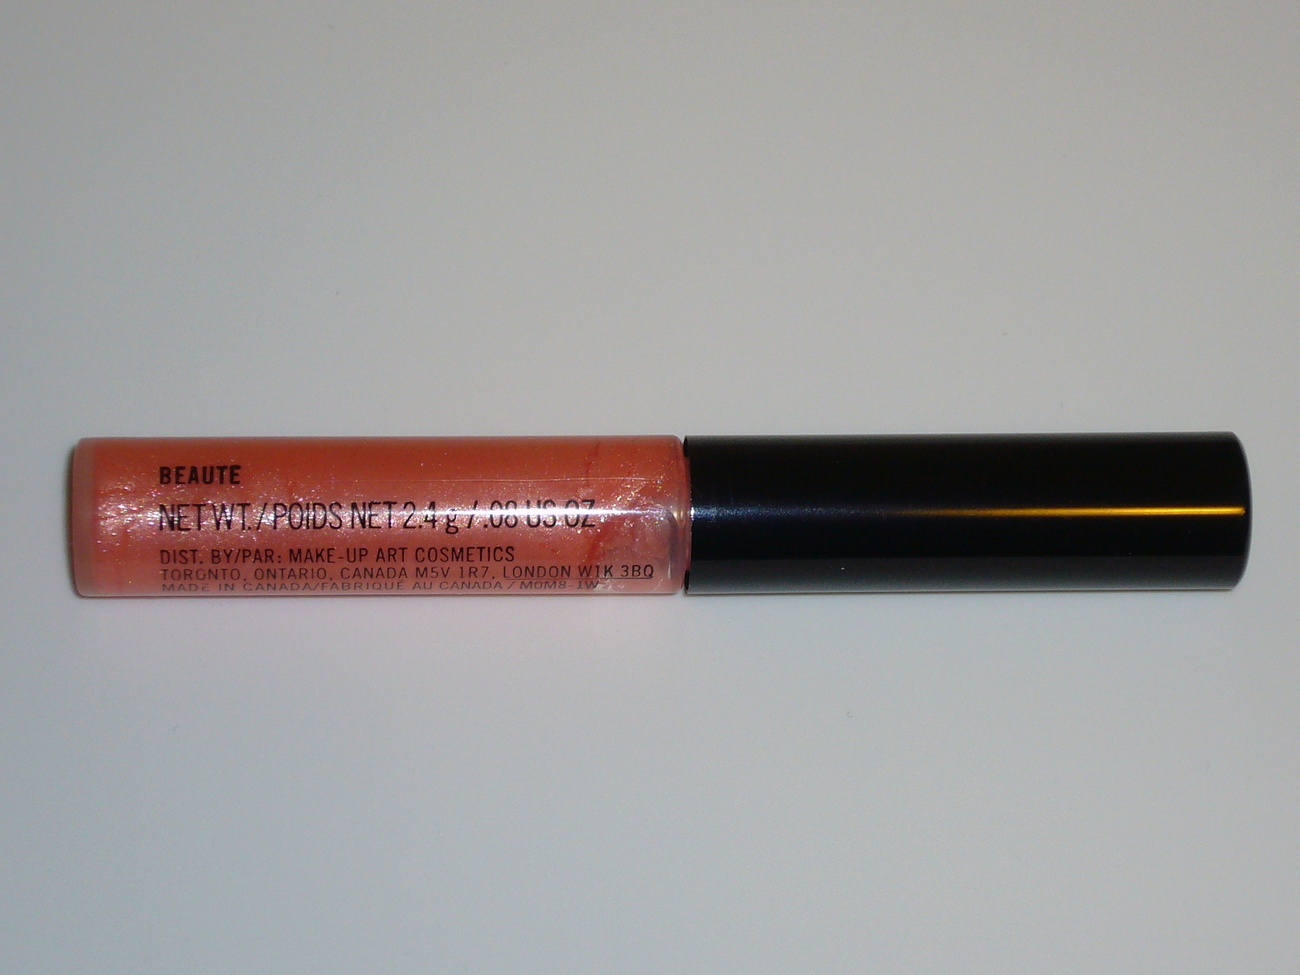 MAC Lipglass Lustreglass Lip Gloss - Beaute